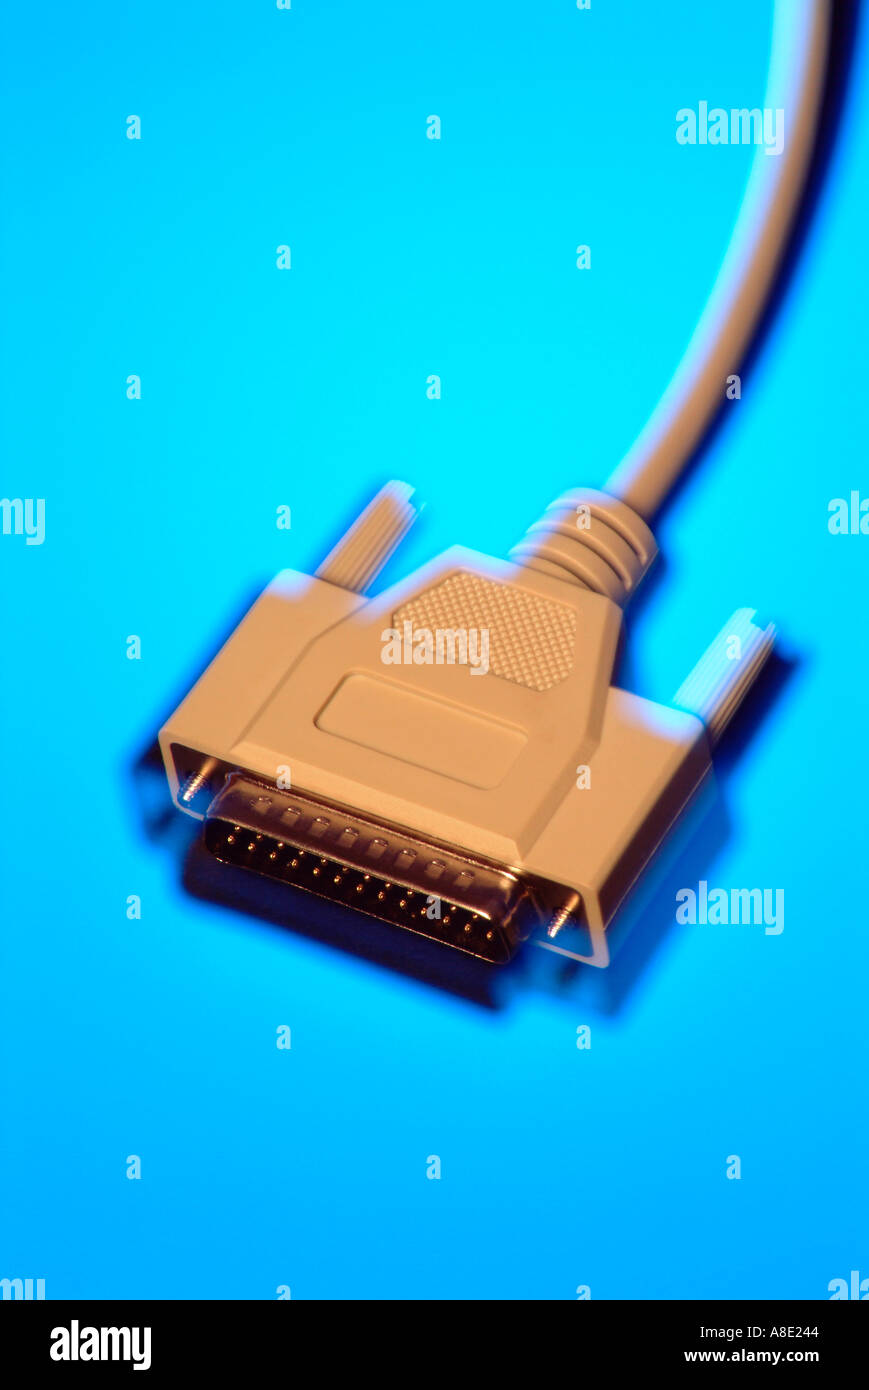 Scsi Cable Wiring Diagram Electrical Diagrams Computer Stock Photos Images Alamy Usb Connection